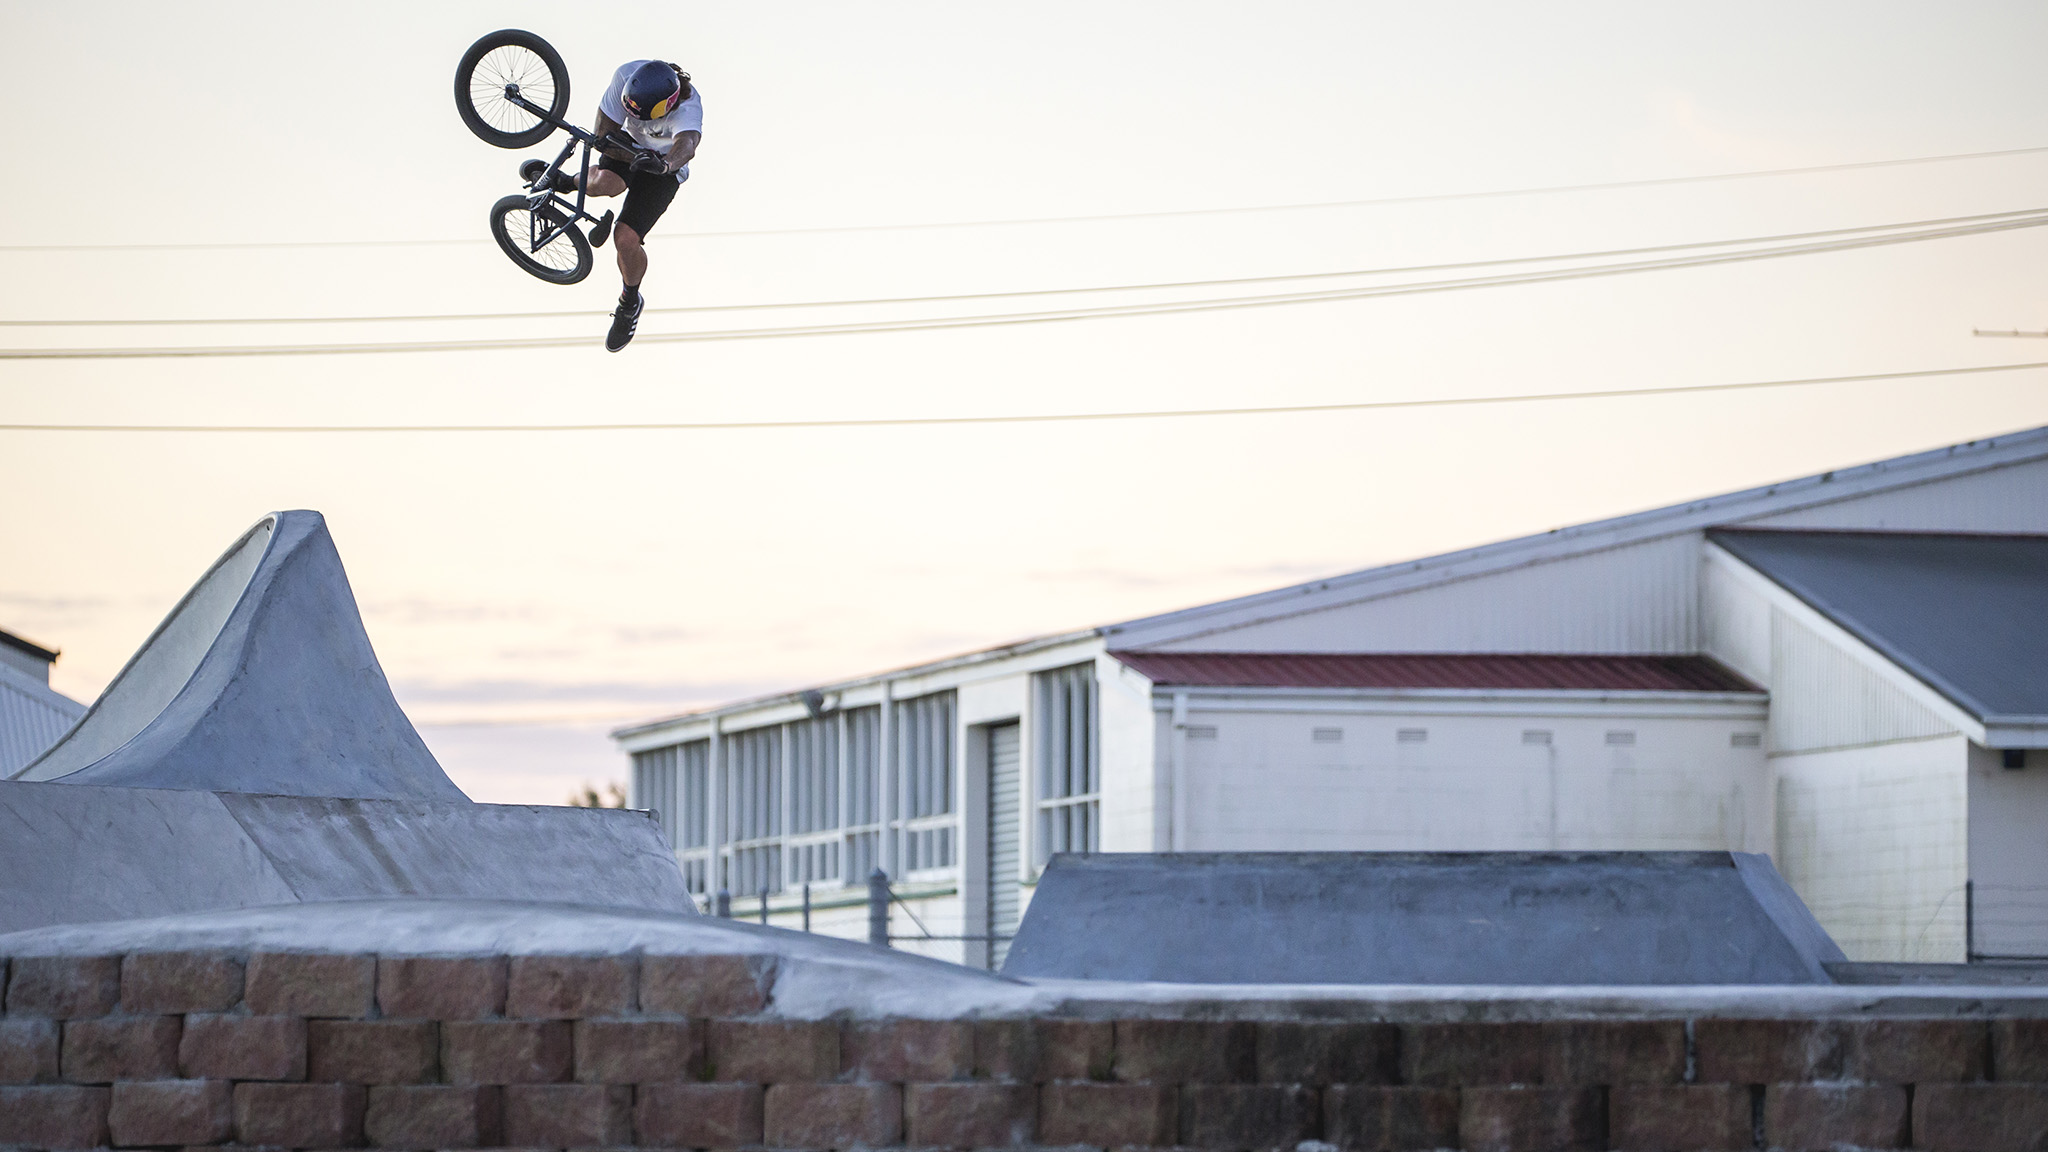 The Year In BMX